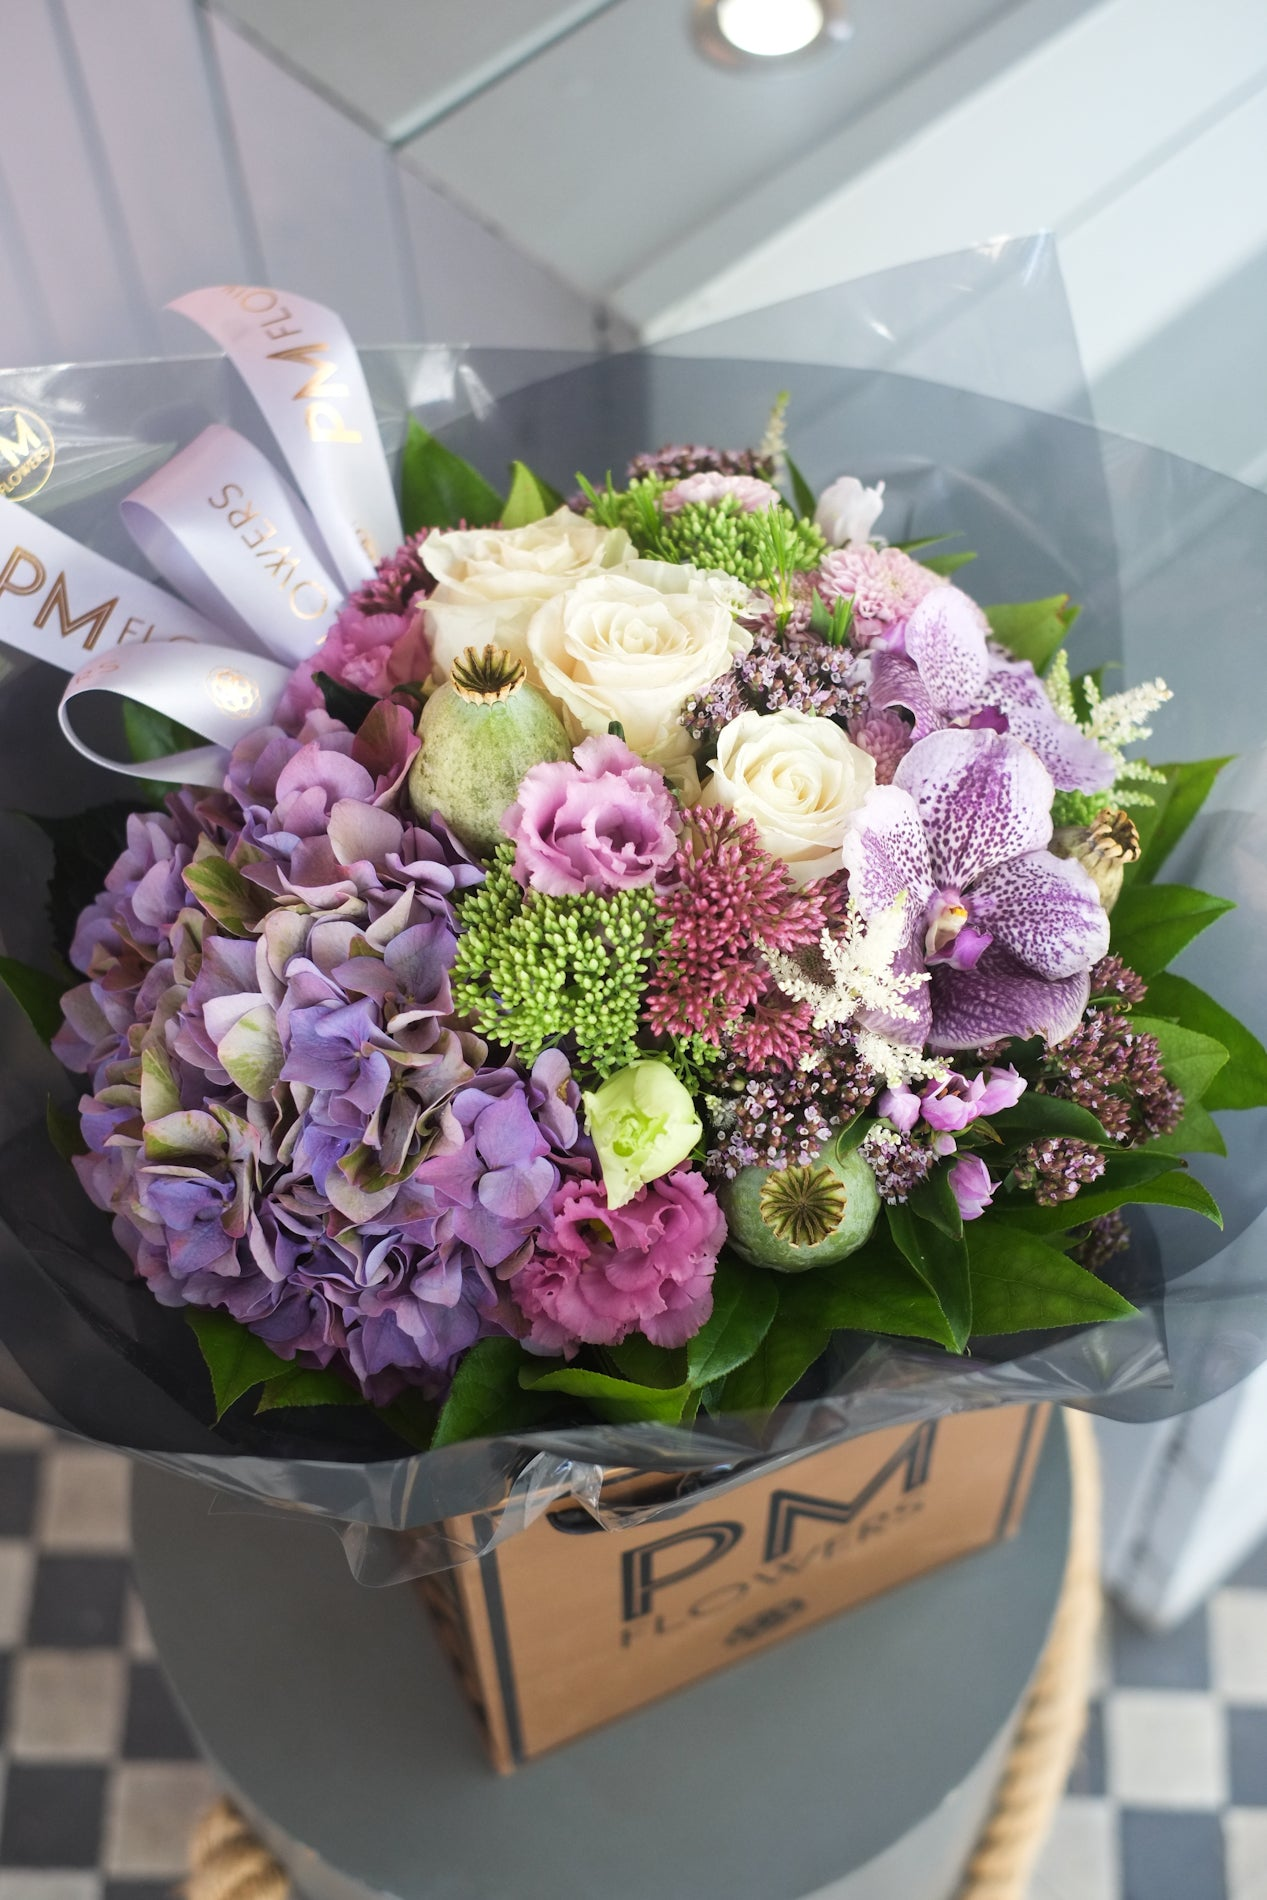 Bohemian bouquet flowers is A beautiful harmonizing combination of Hydrangeas, Roses, Orchids, Poppys, Oregano and complimenting foliages.